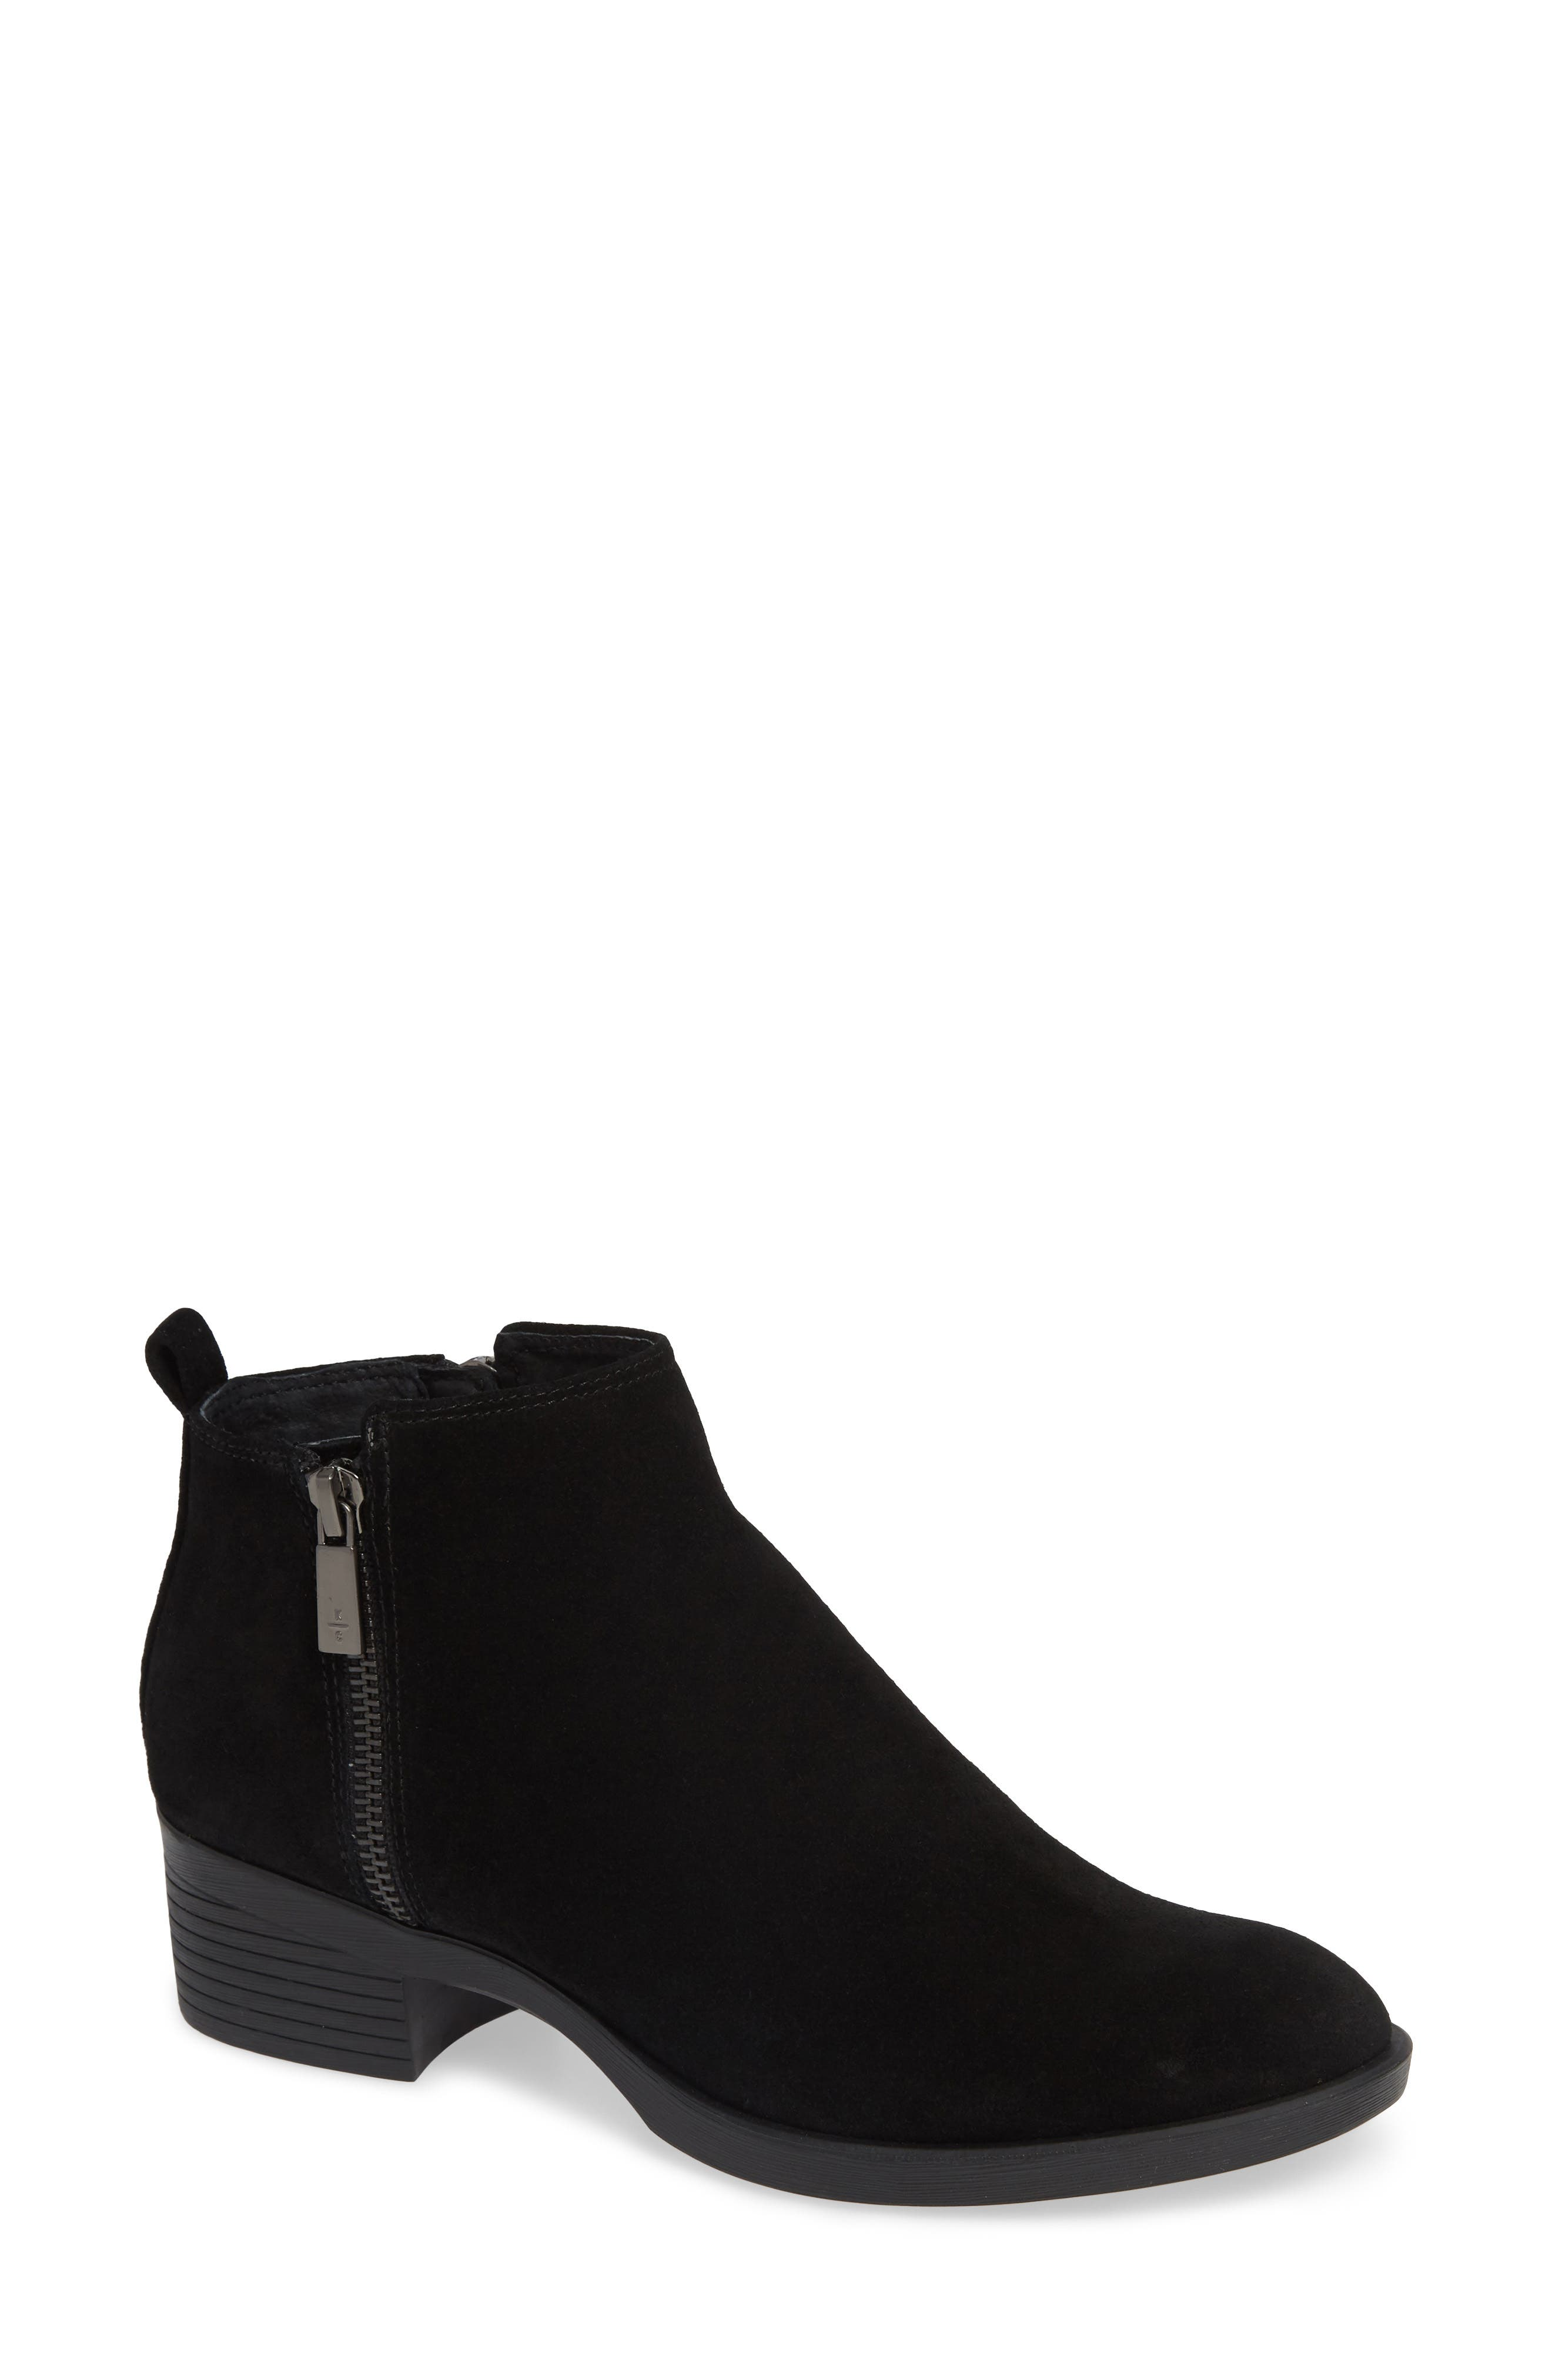 'Levon' Bootie,                             Main thumbnail 1, color,                             BLACK SUEDE